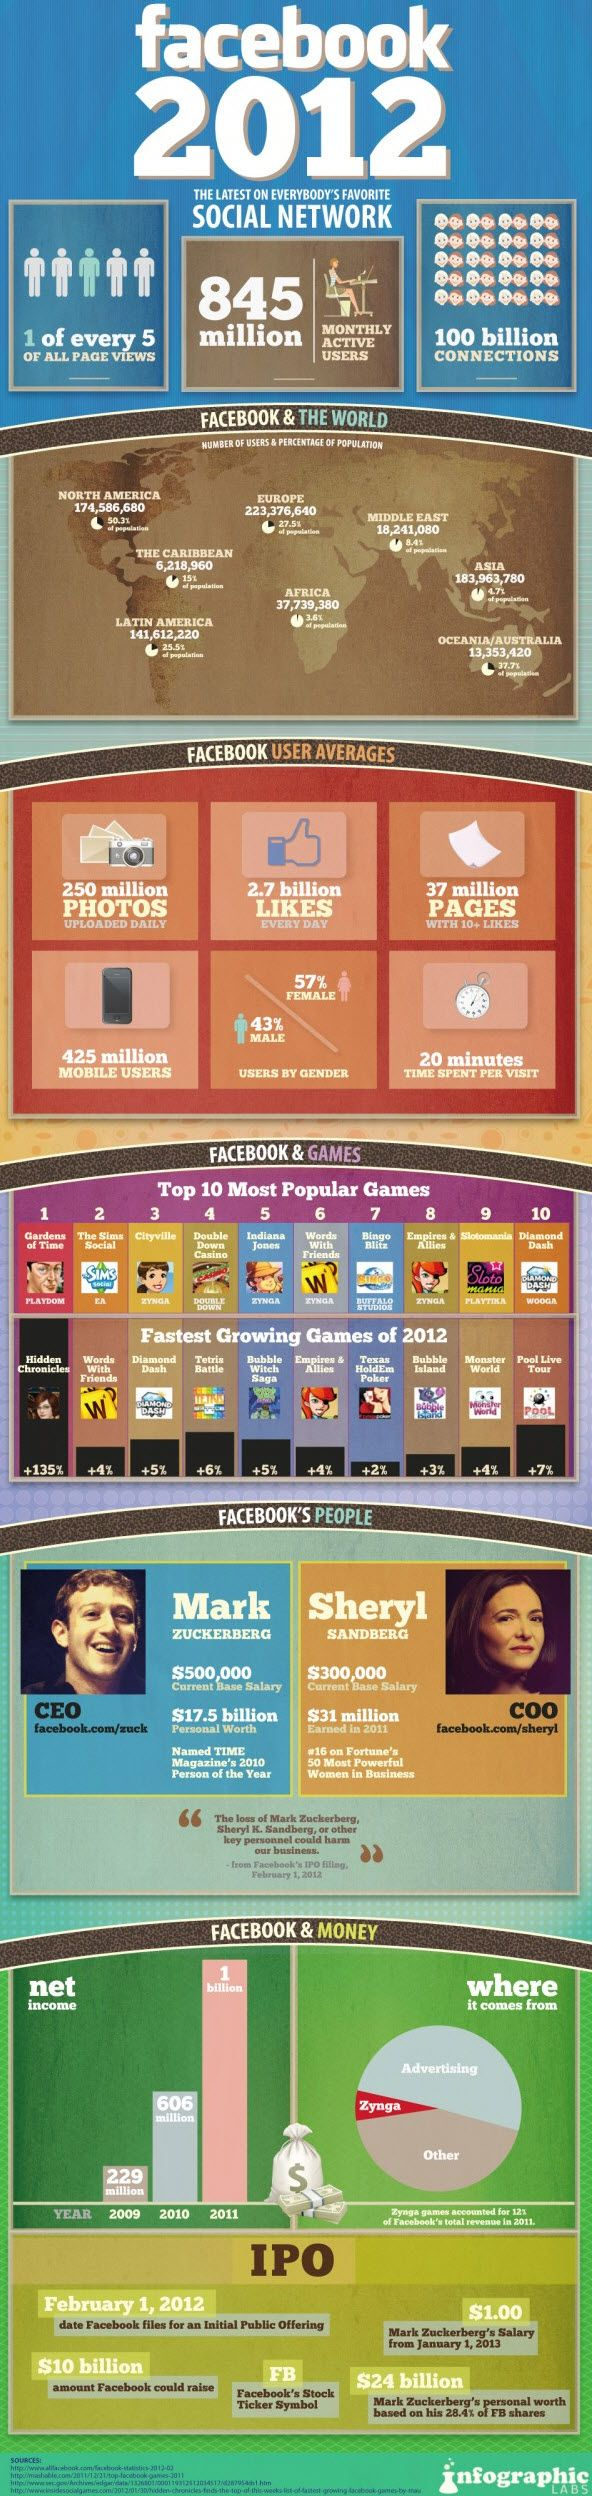 Facebook facts figures and statistics 2012